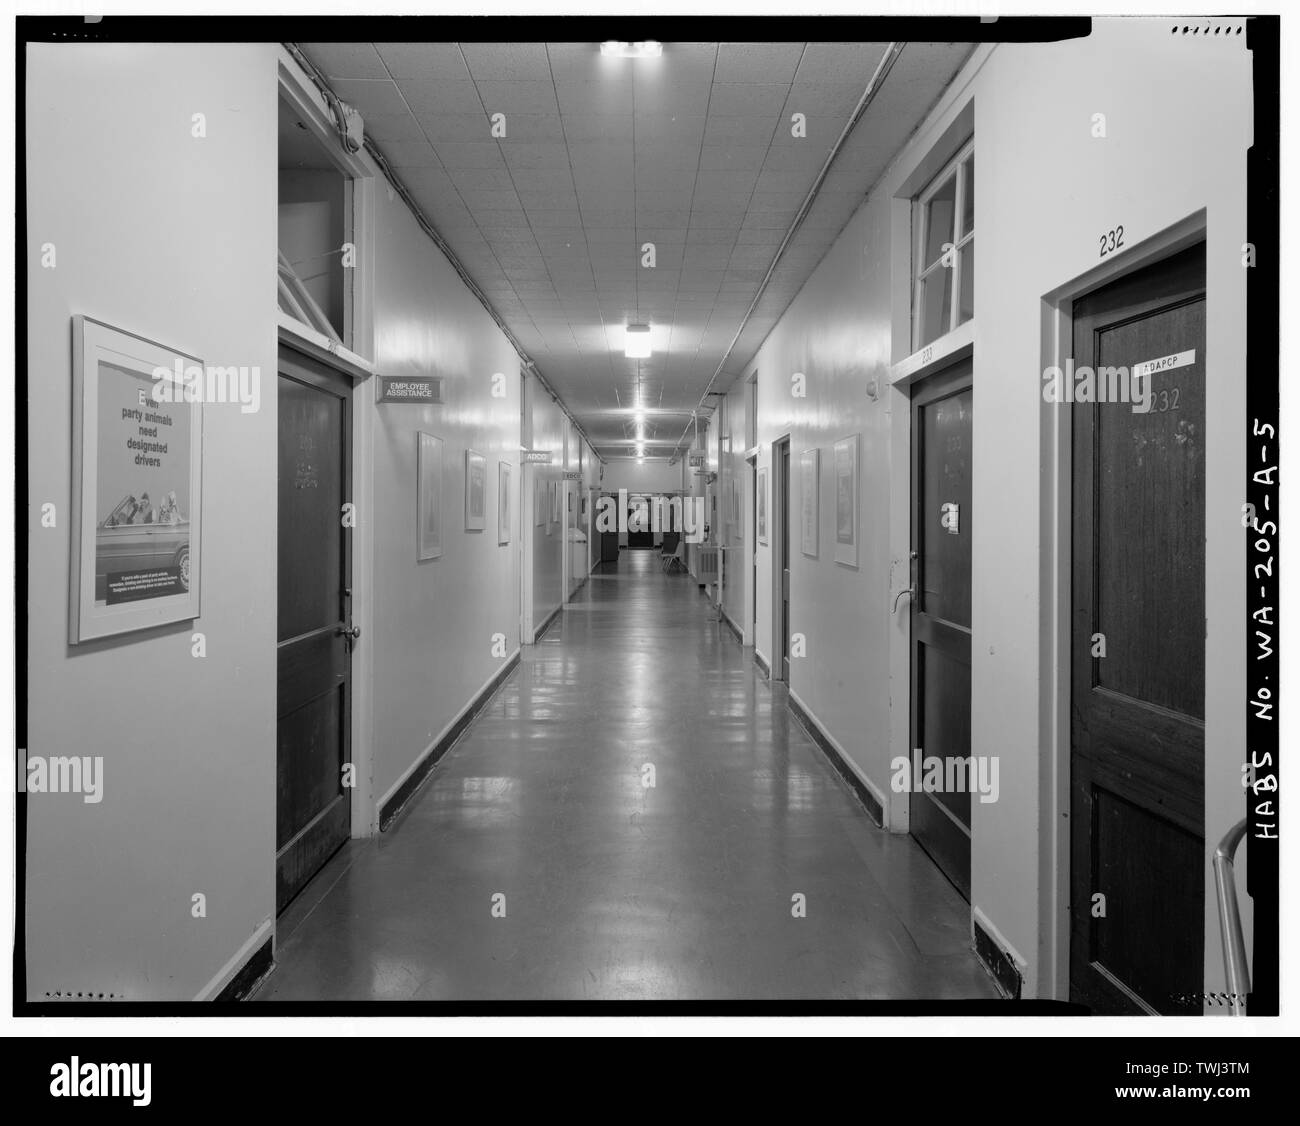 Second floor hallway running SW-NE. Nearest doors with transoms are Room 203 on left and Room 233 on right. - Fort Lewis, Post Hospital, Near Ninth Division Drive and Idaho Avenue, DuPont, Pierce County, WA; Maul, David, transmitter - Stock Image